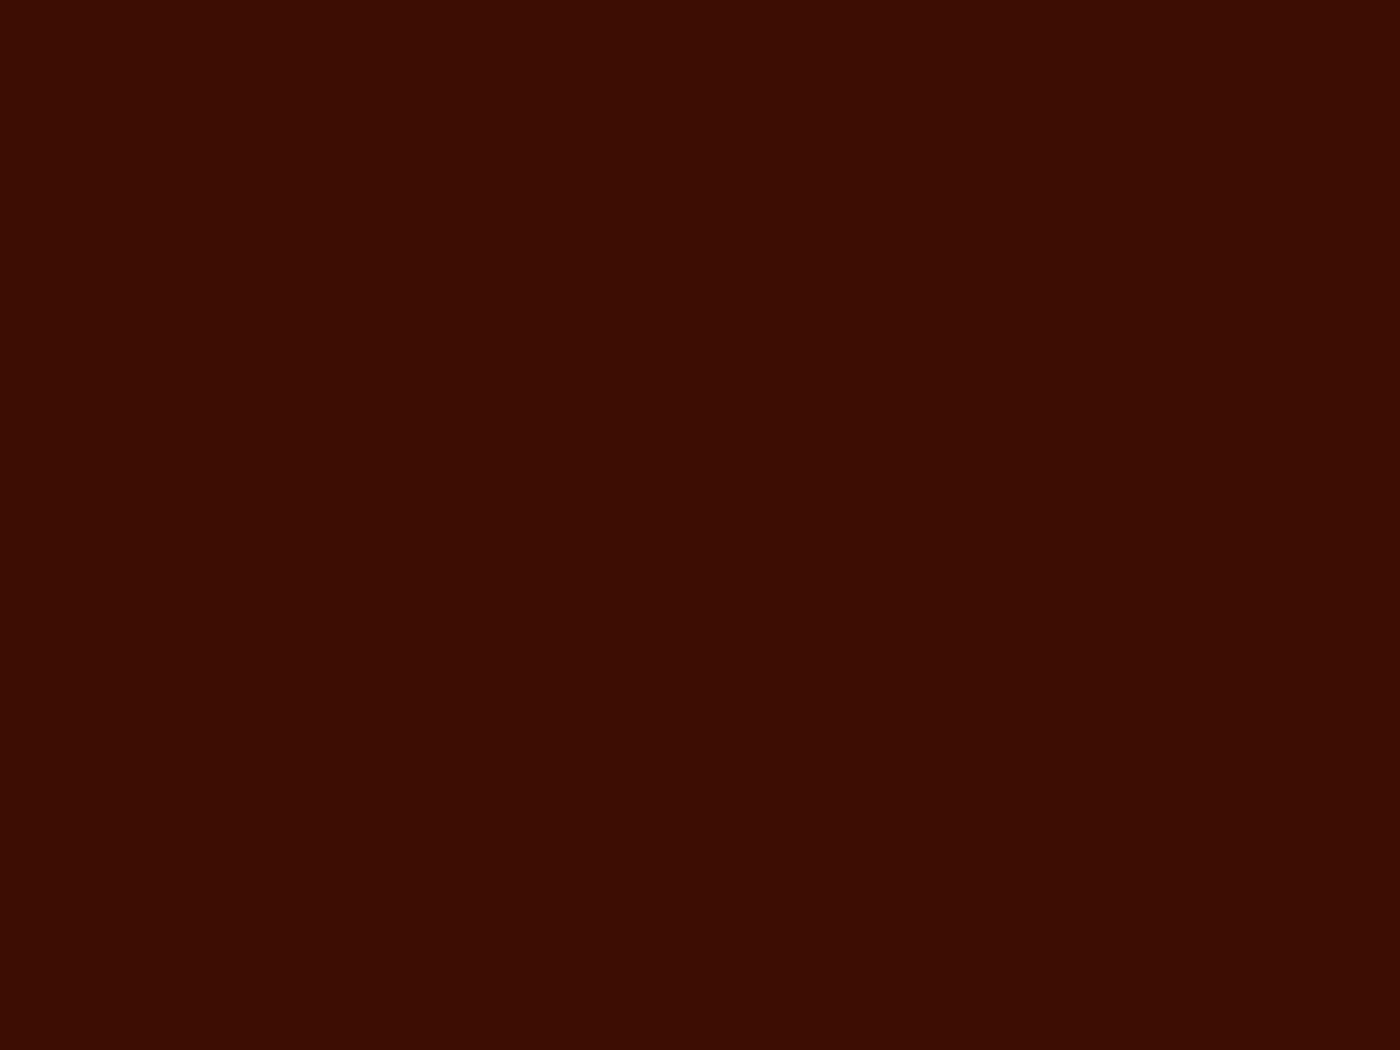 1400x1050 Black Bean Solid Color Background